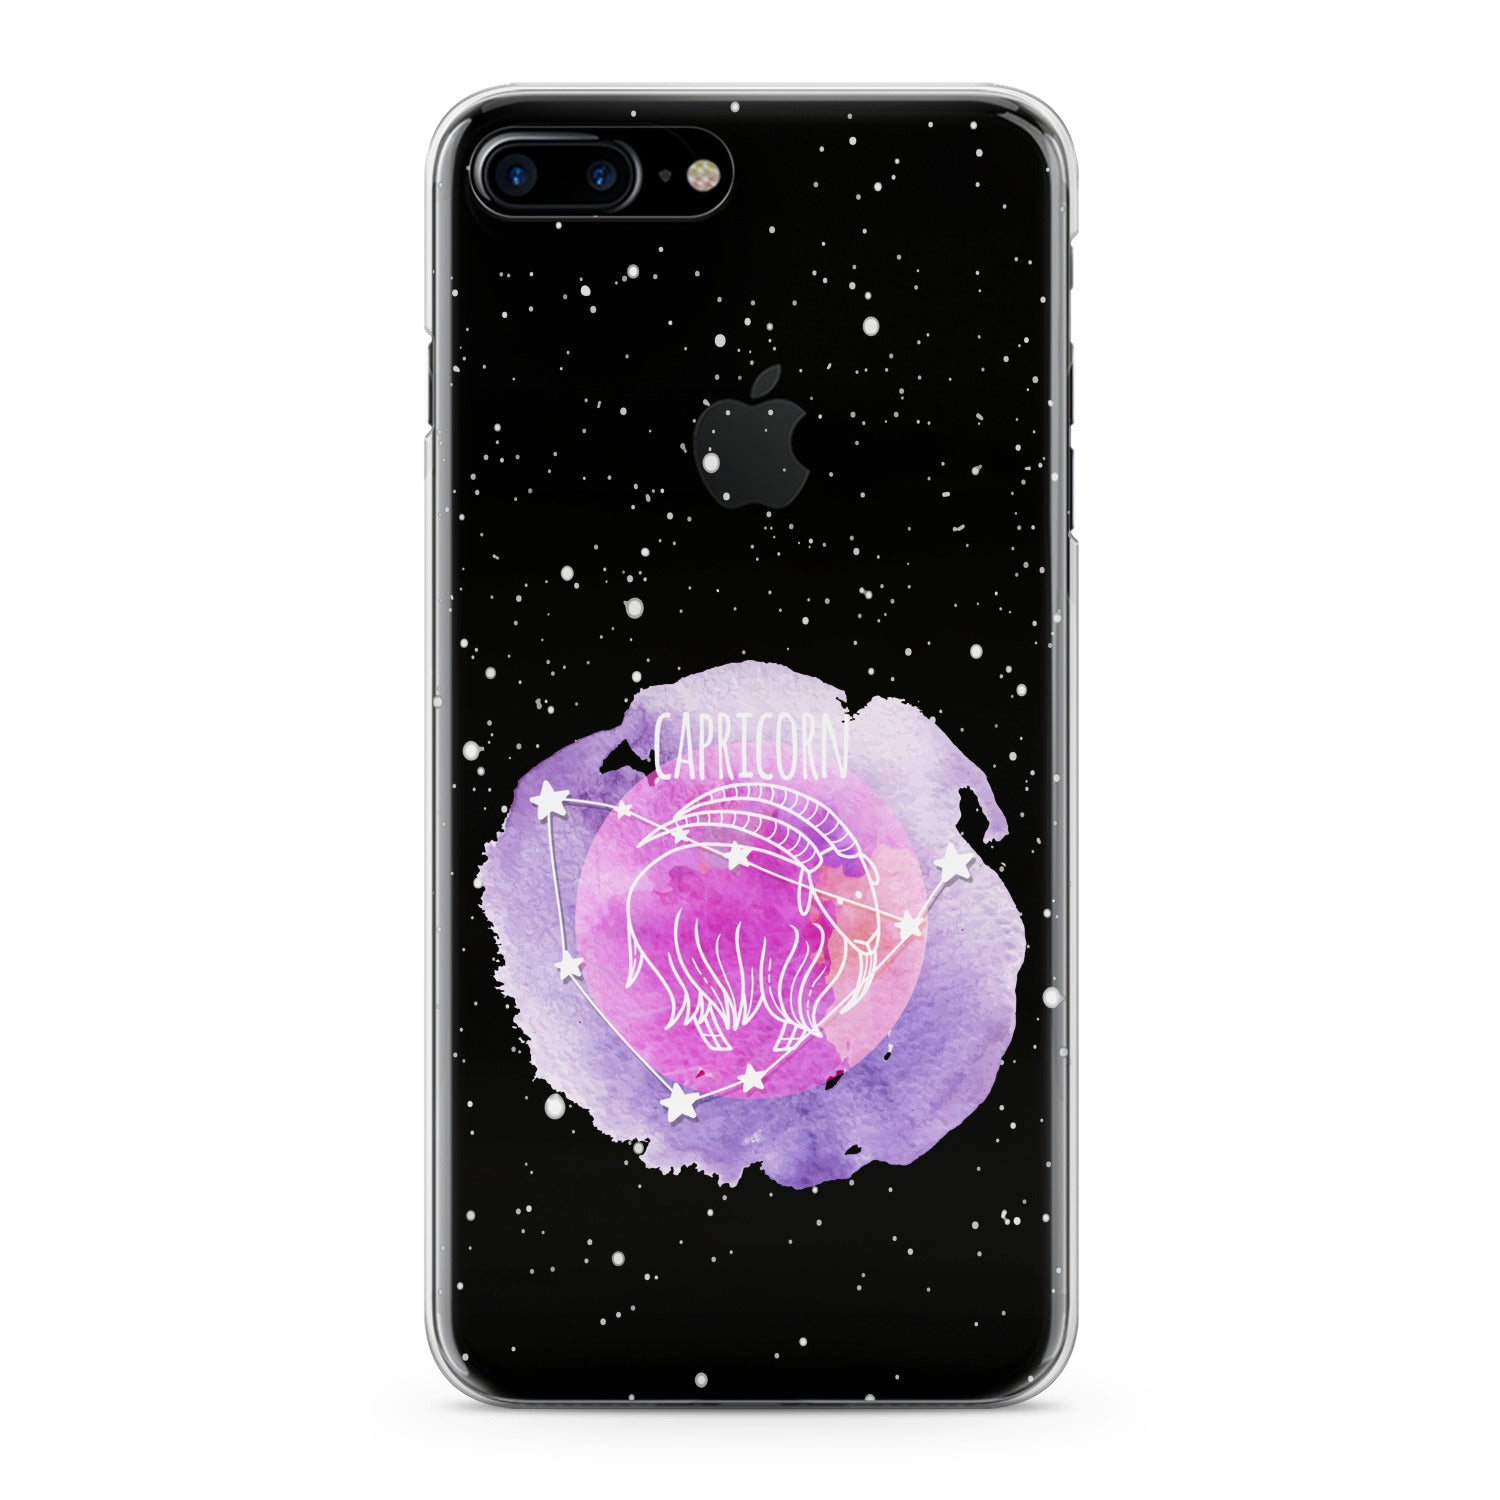 Lex Altern Capricorn Zodiac Phone Case for your iPhone & Android phone.